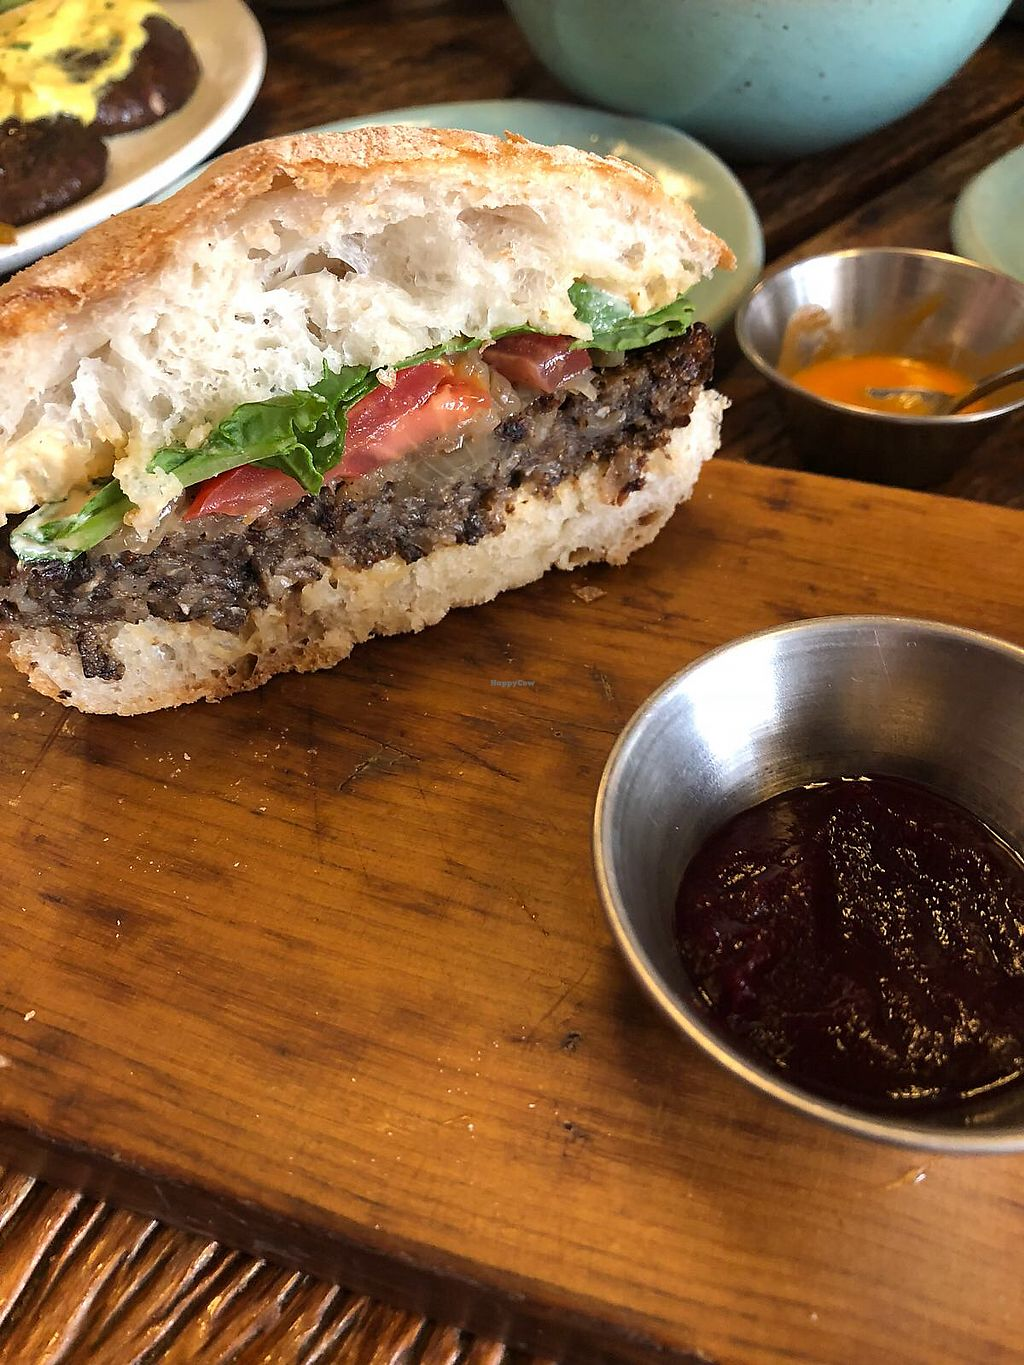 """Photo of Teva  by <a href=""""/members/profile/NitzanNickiGat"""">NitzanNickiGat</a> <br/>Rice & mushrooms burgers  <br/> February 20, 2018  - <a href='/contact/abuse/image/78854/361764'>Report</a>"""